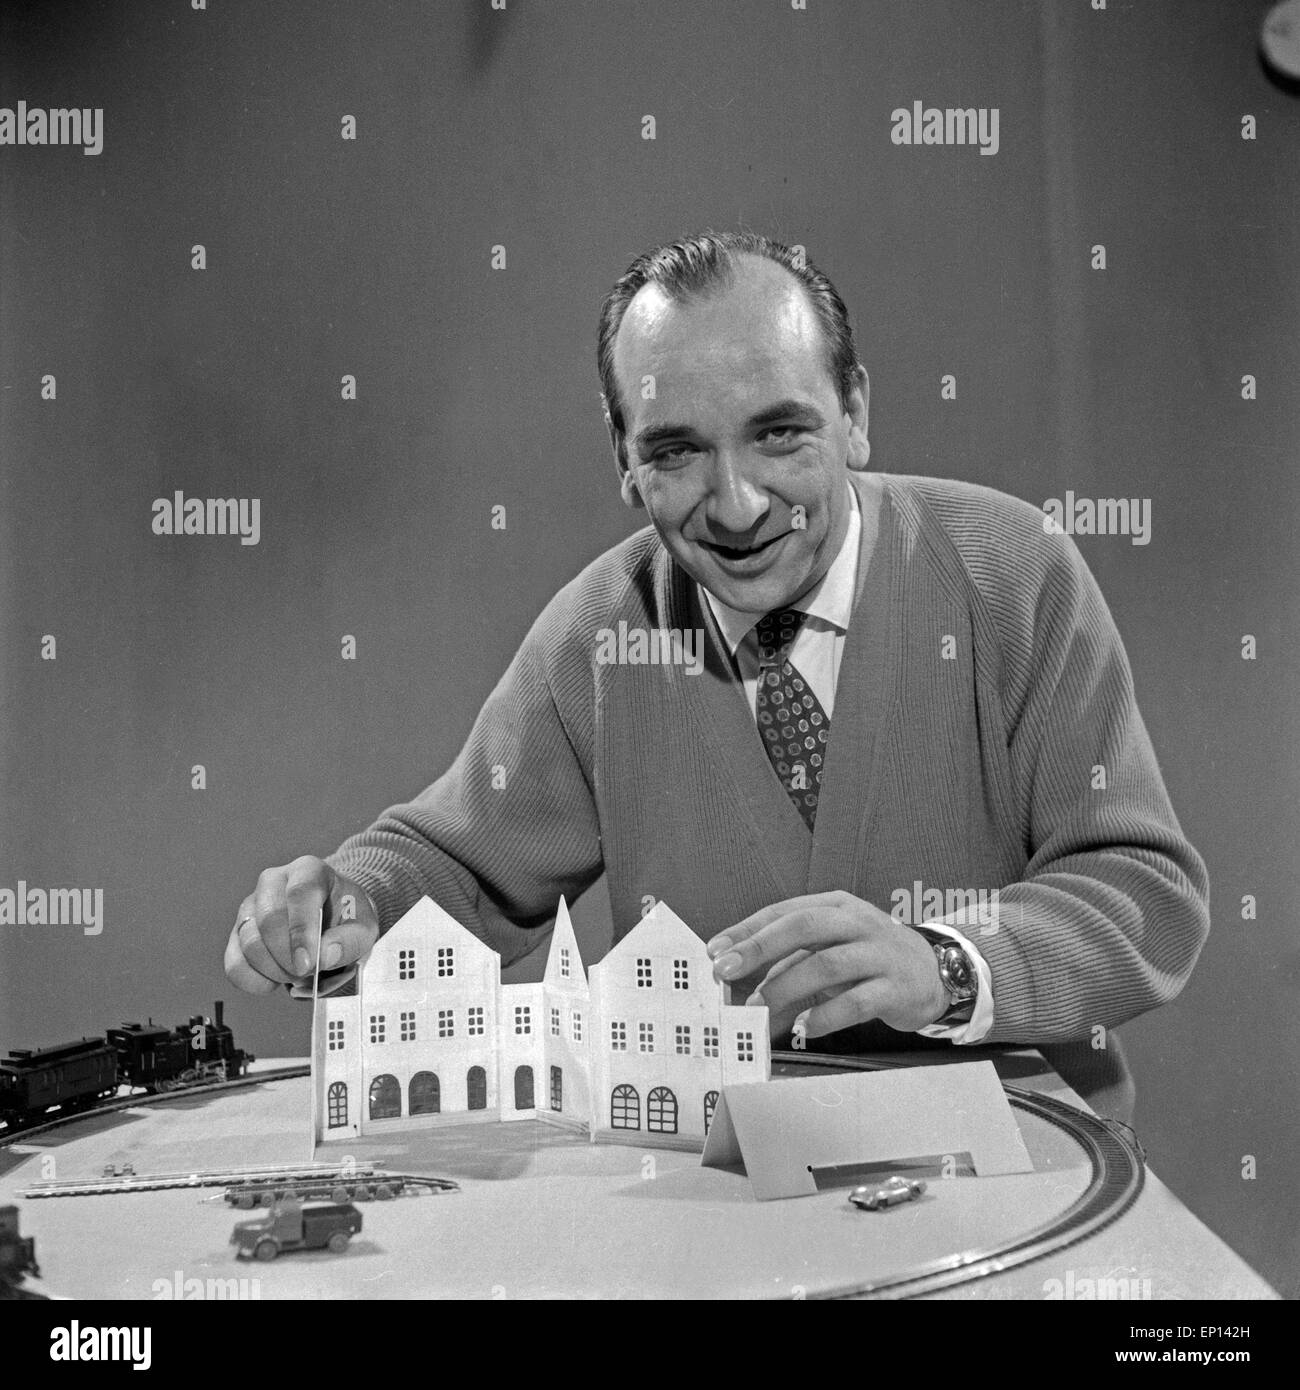 Ein Mann spielt mit seiner Modelleisenbahn, Deutschland 1950er Jahre. A man playing with his model train, Germany Stock Photo